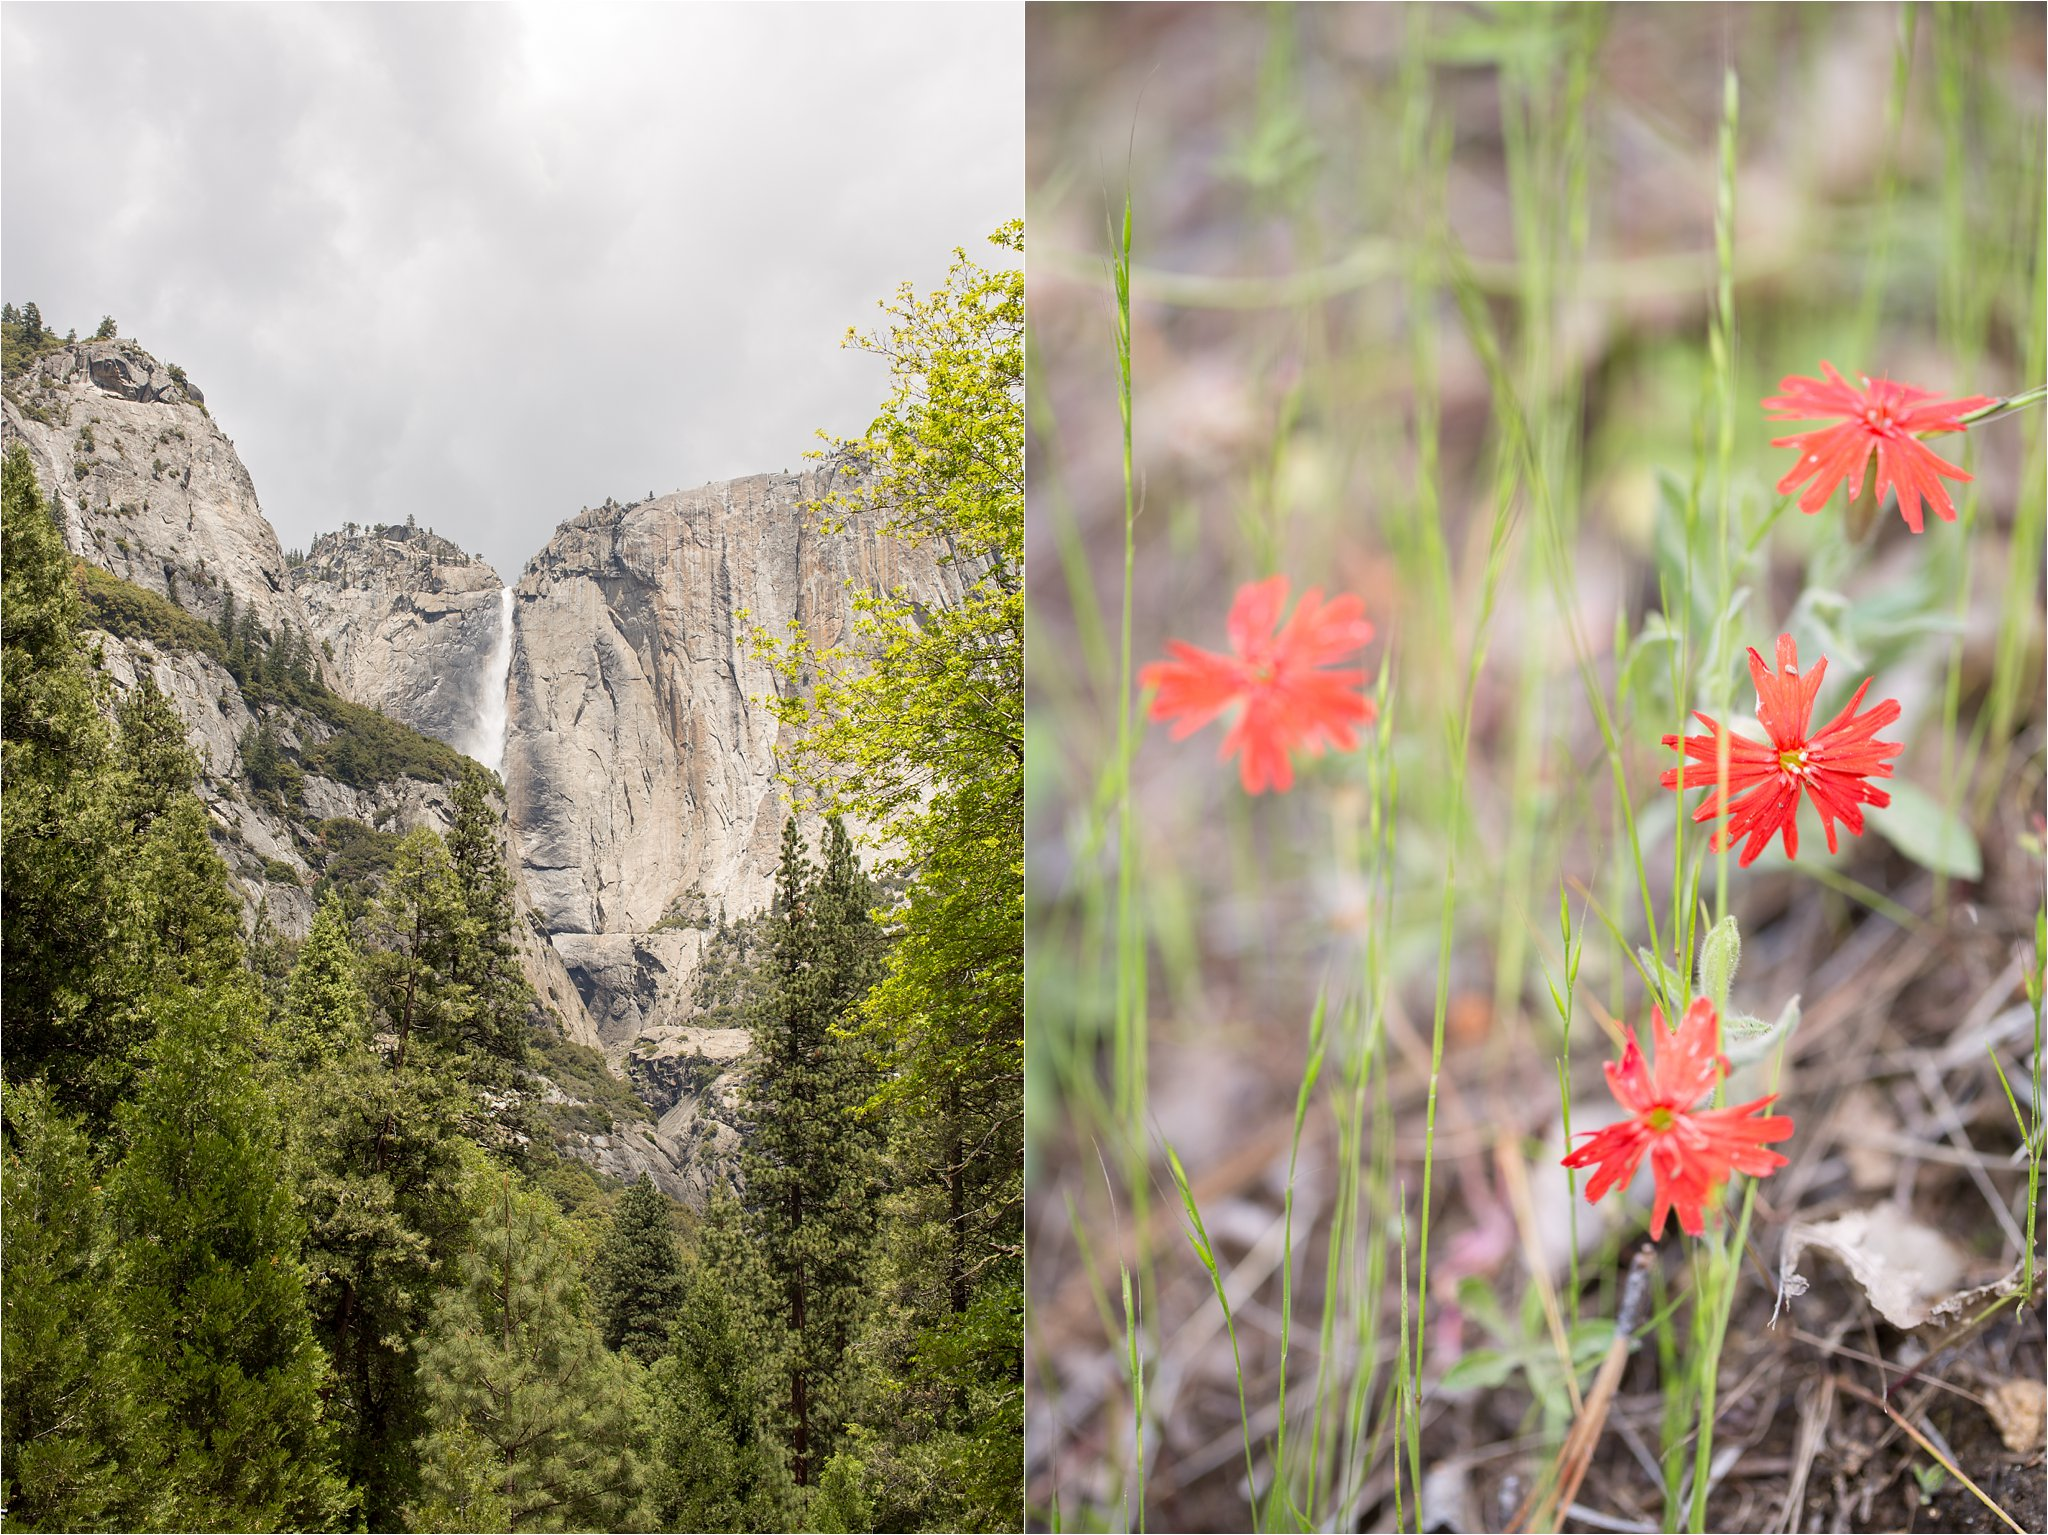 Yosemite Waterfall and Wildflowers